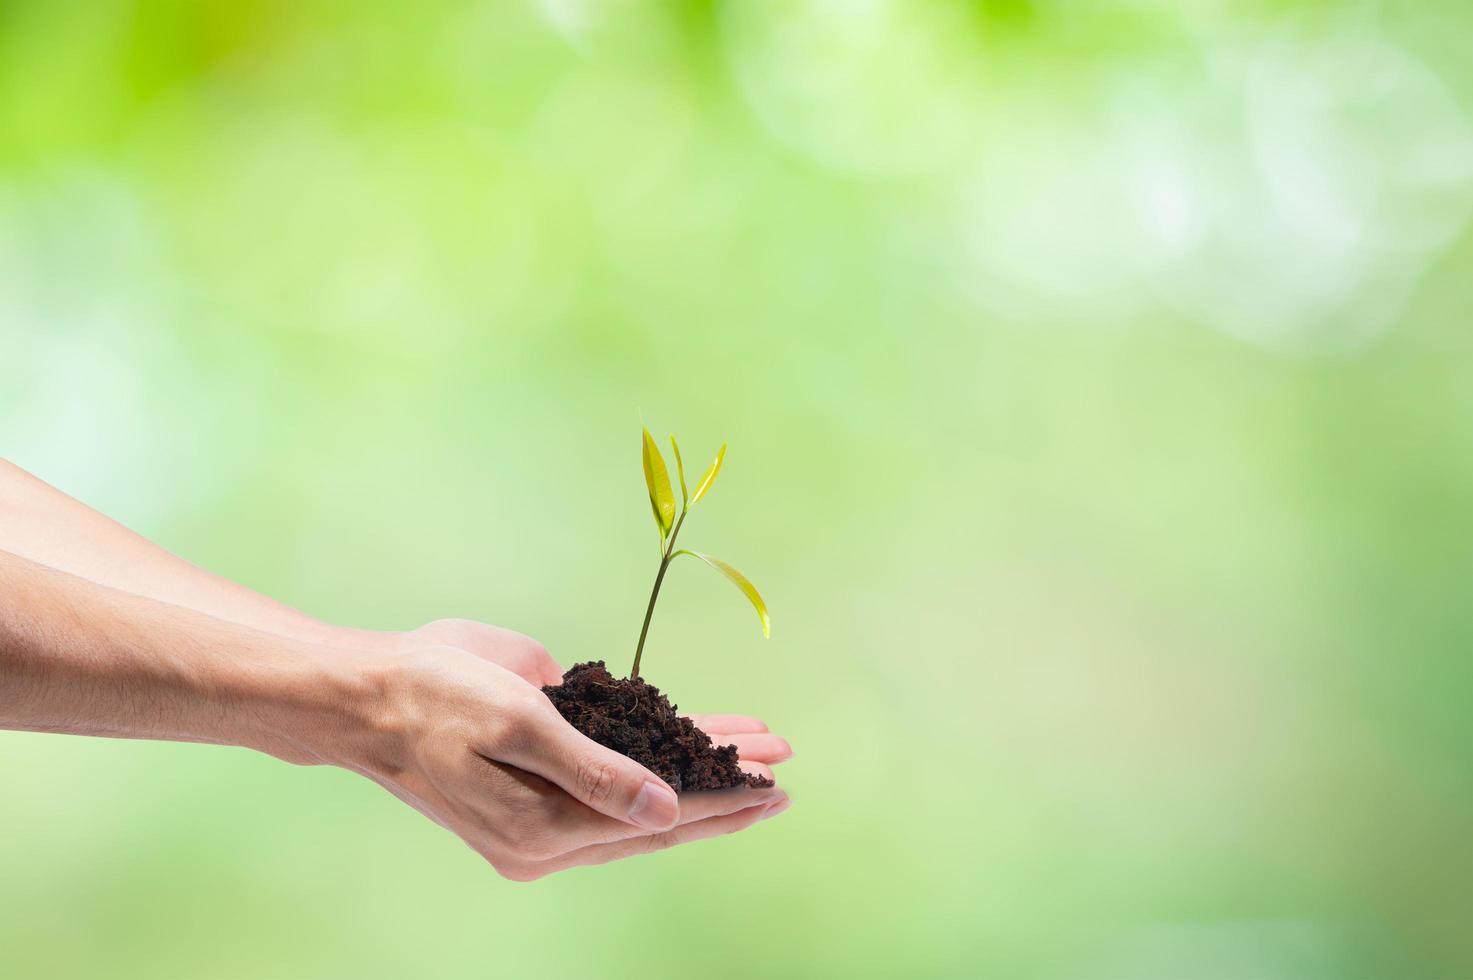 Hands are planting a small tree photo